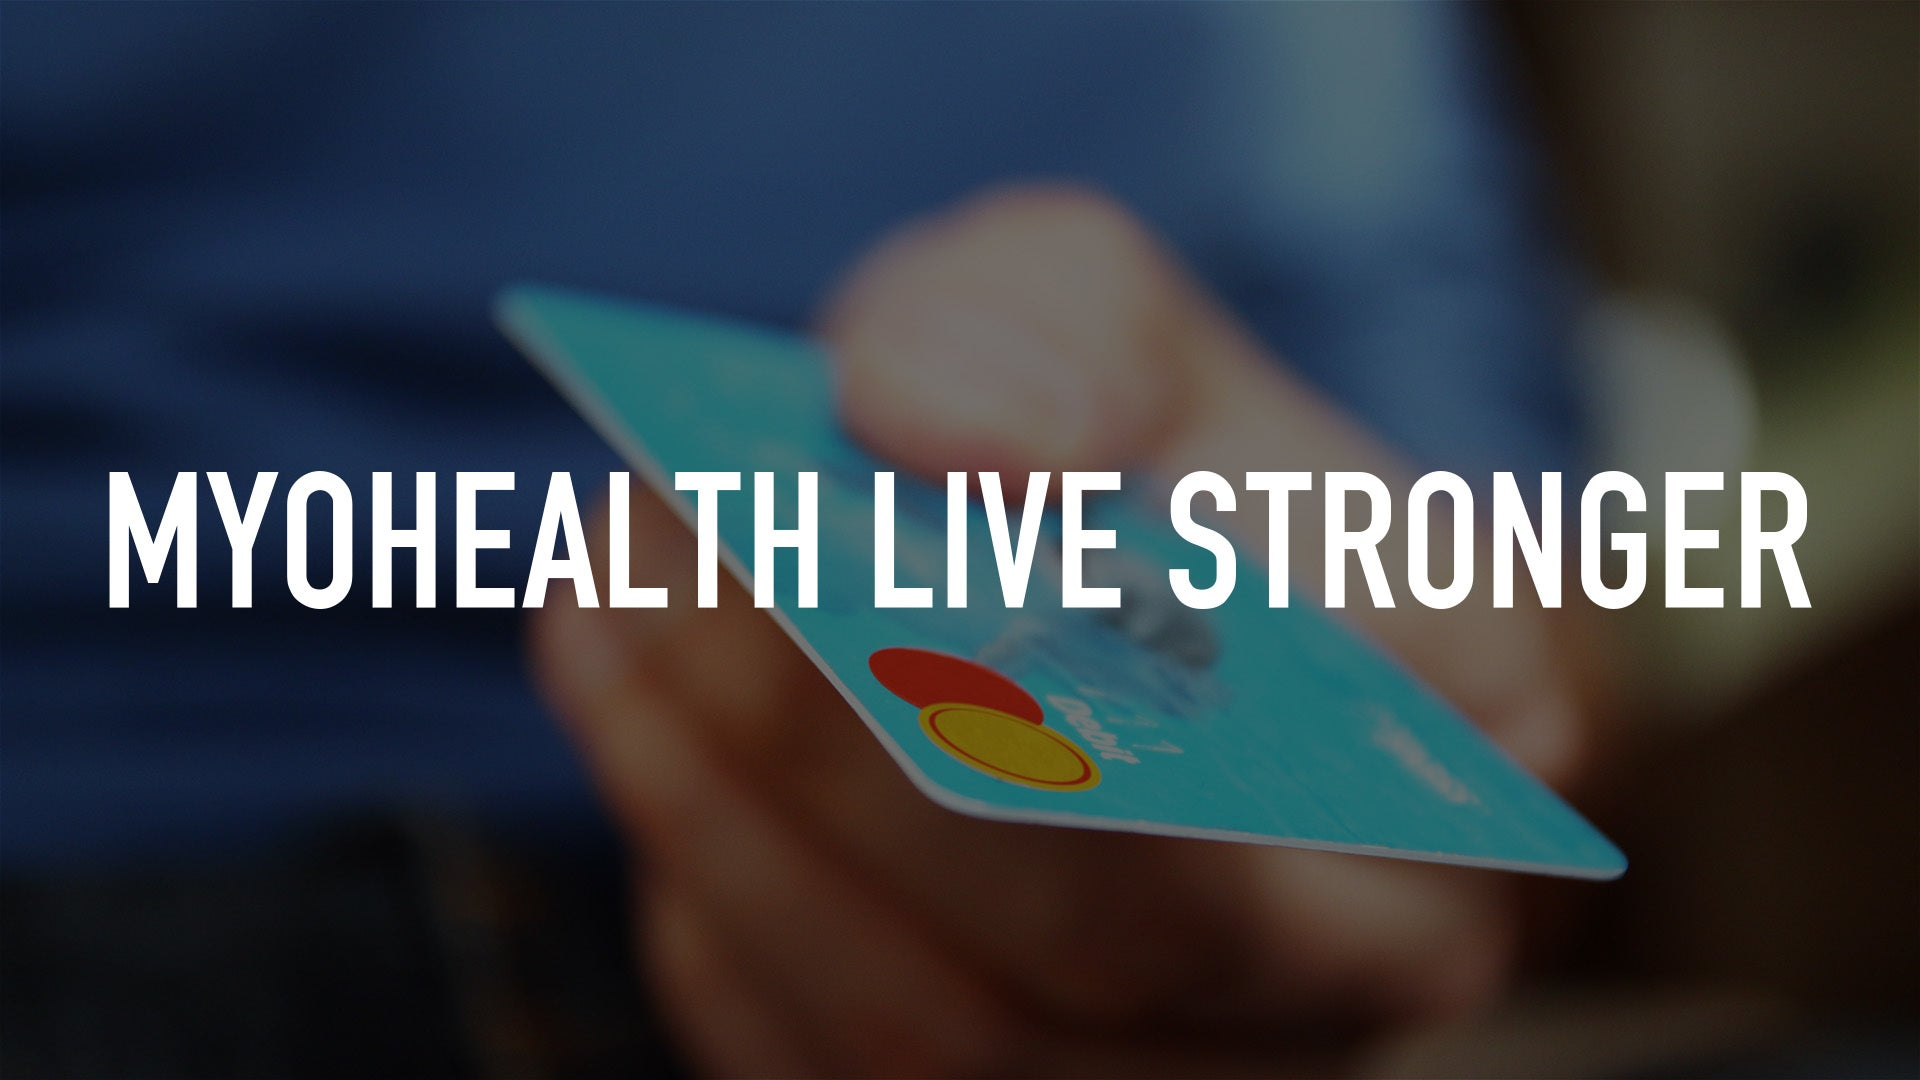 MyoHealth Live Stronger